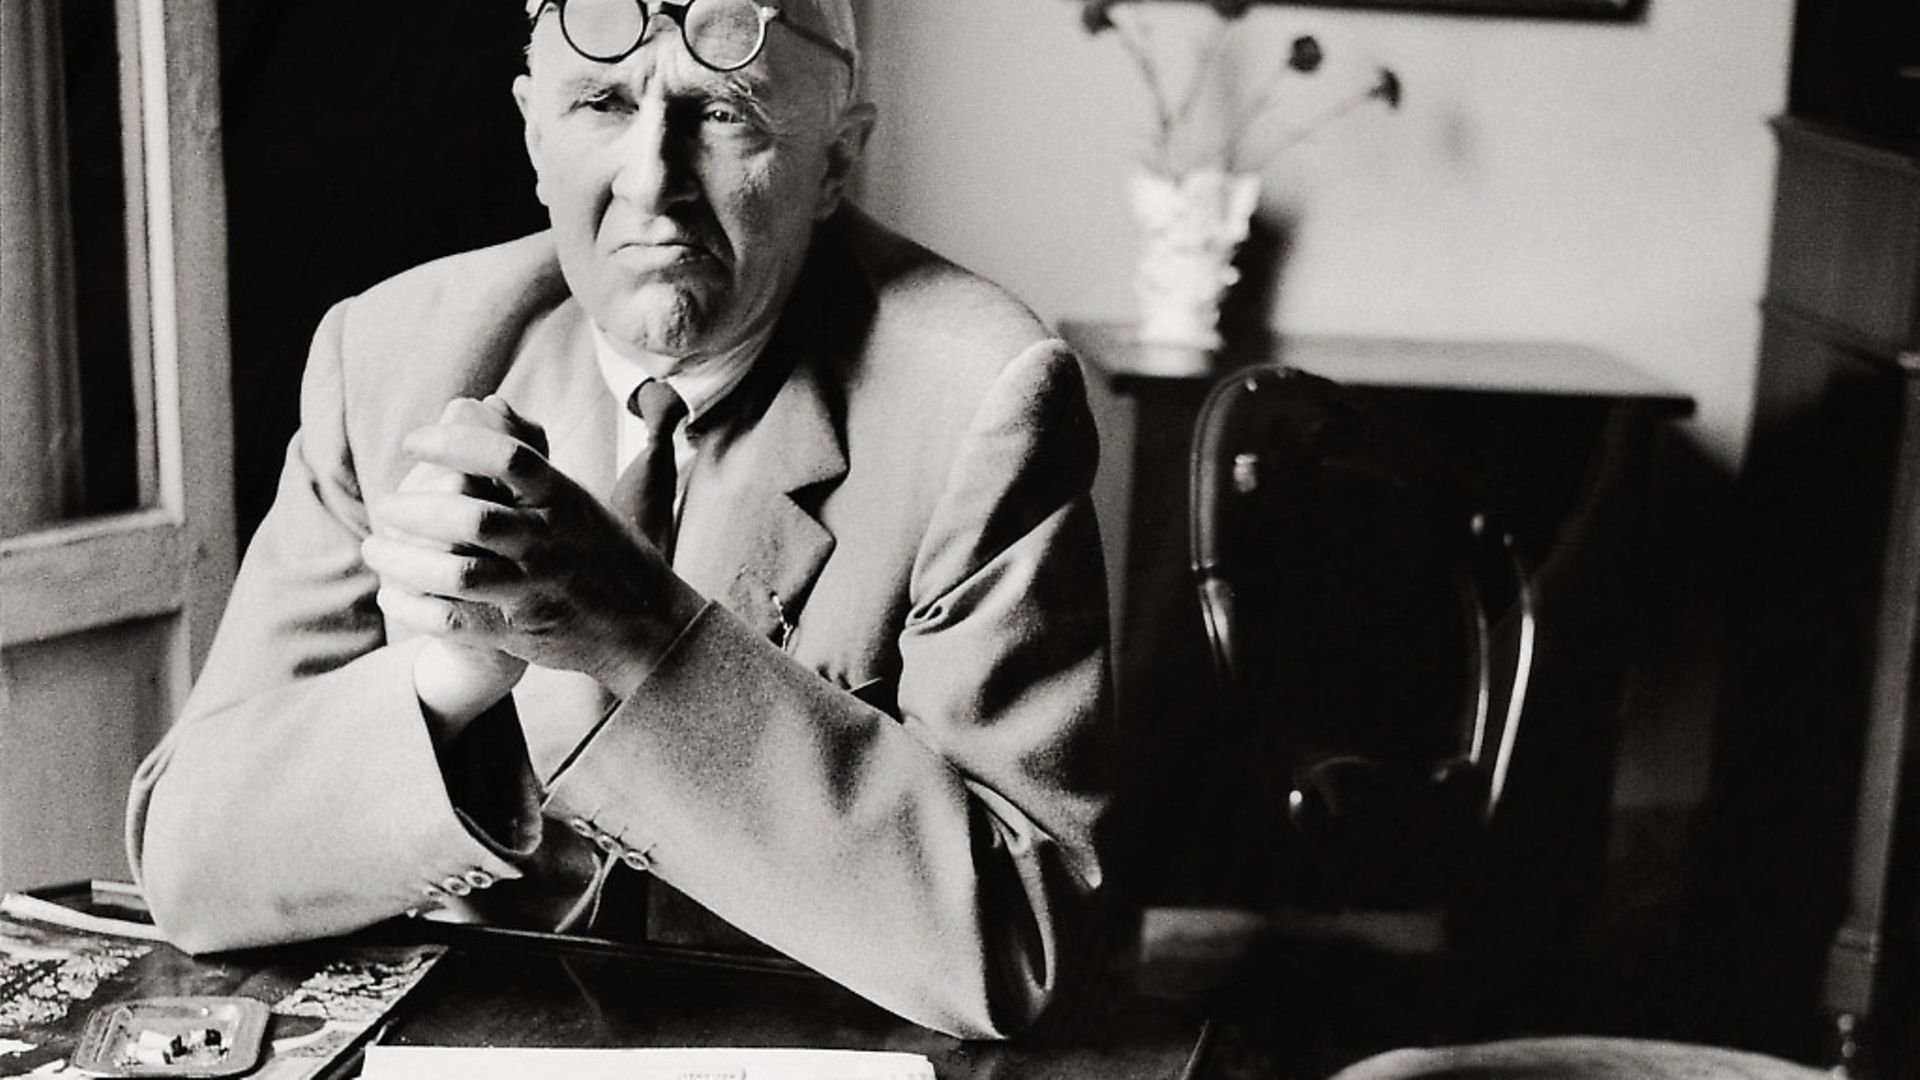 Painter Giorgio Morandi in his flat in Bologna. Photography. 1958.  Photo by Imagno/Getty Images - Credit: Getty Images